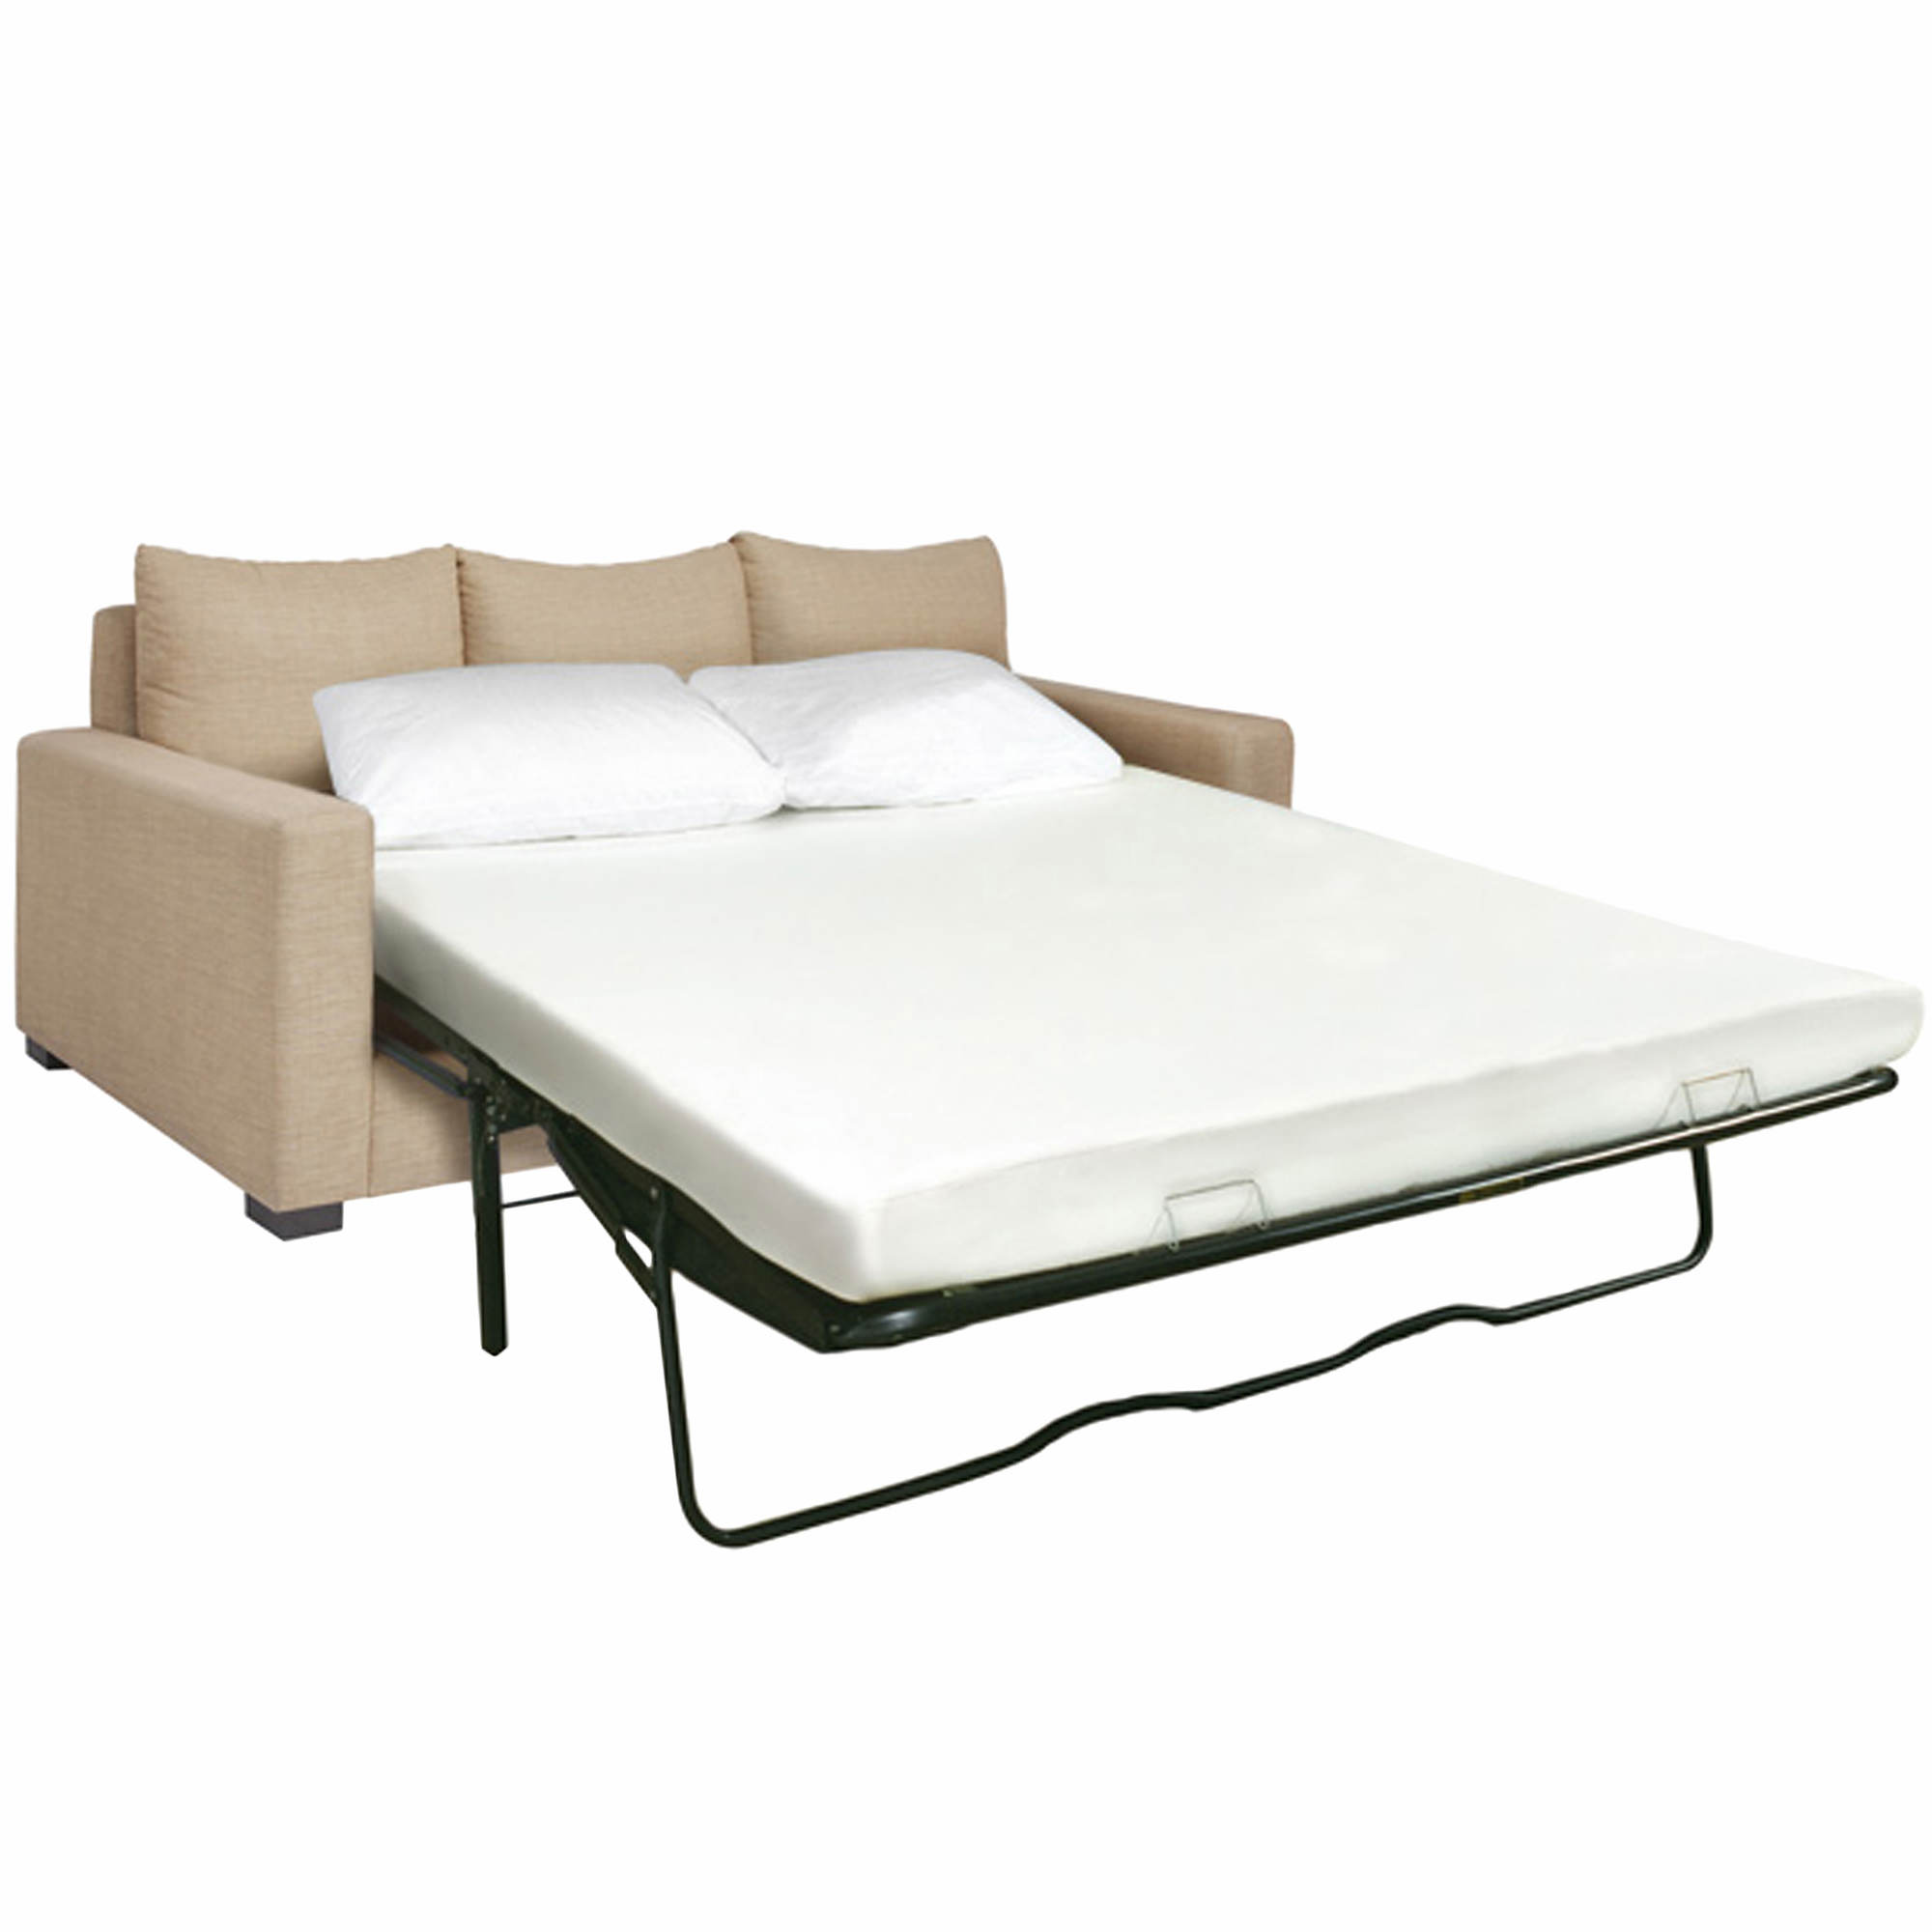 Cradlesoft axiom i queen size sleep sofa replacement for Sofa bed mattress replacement